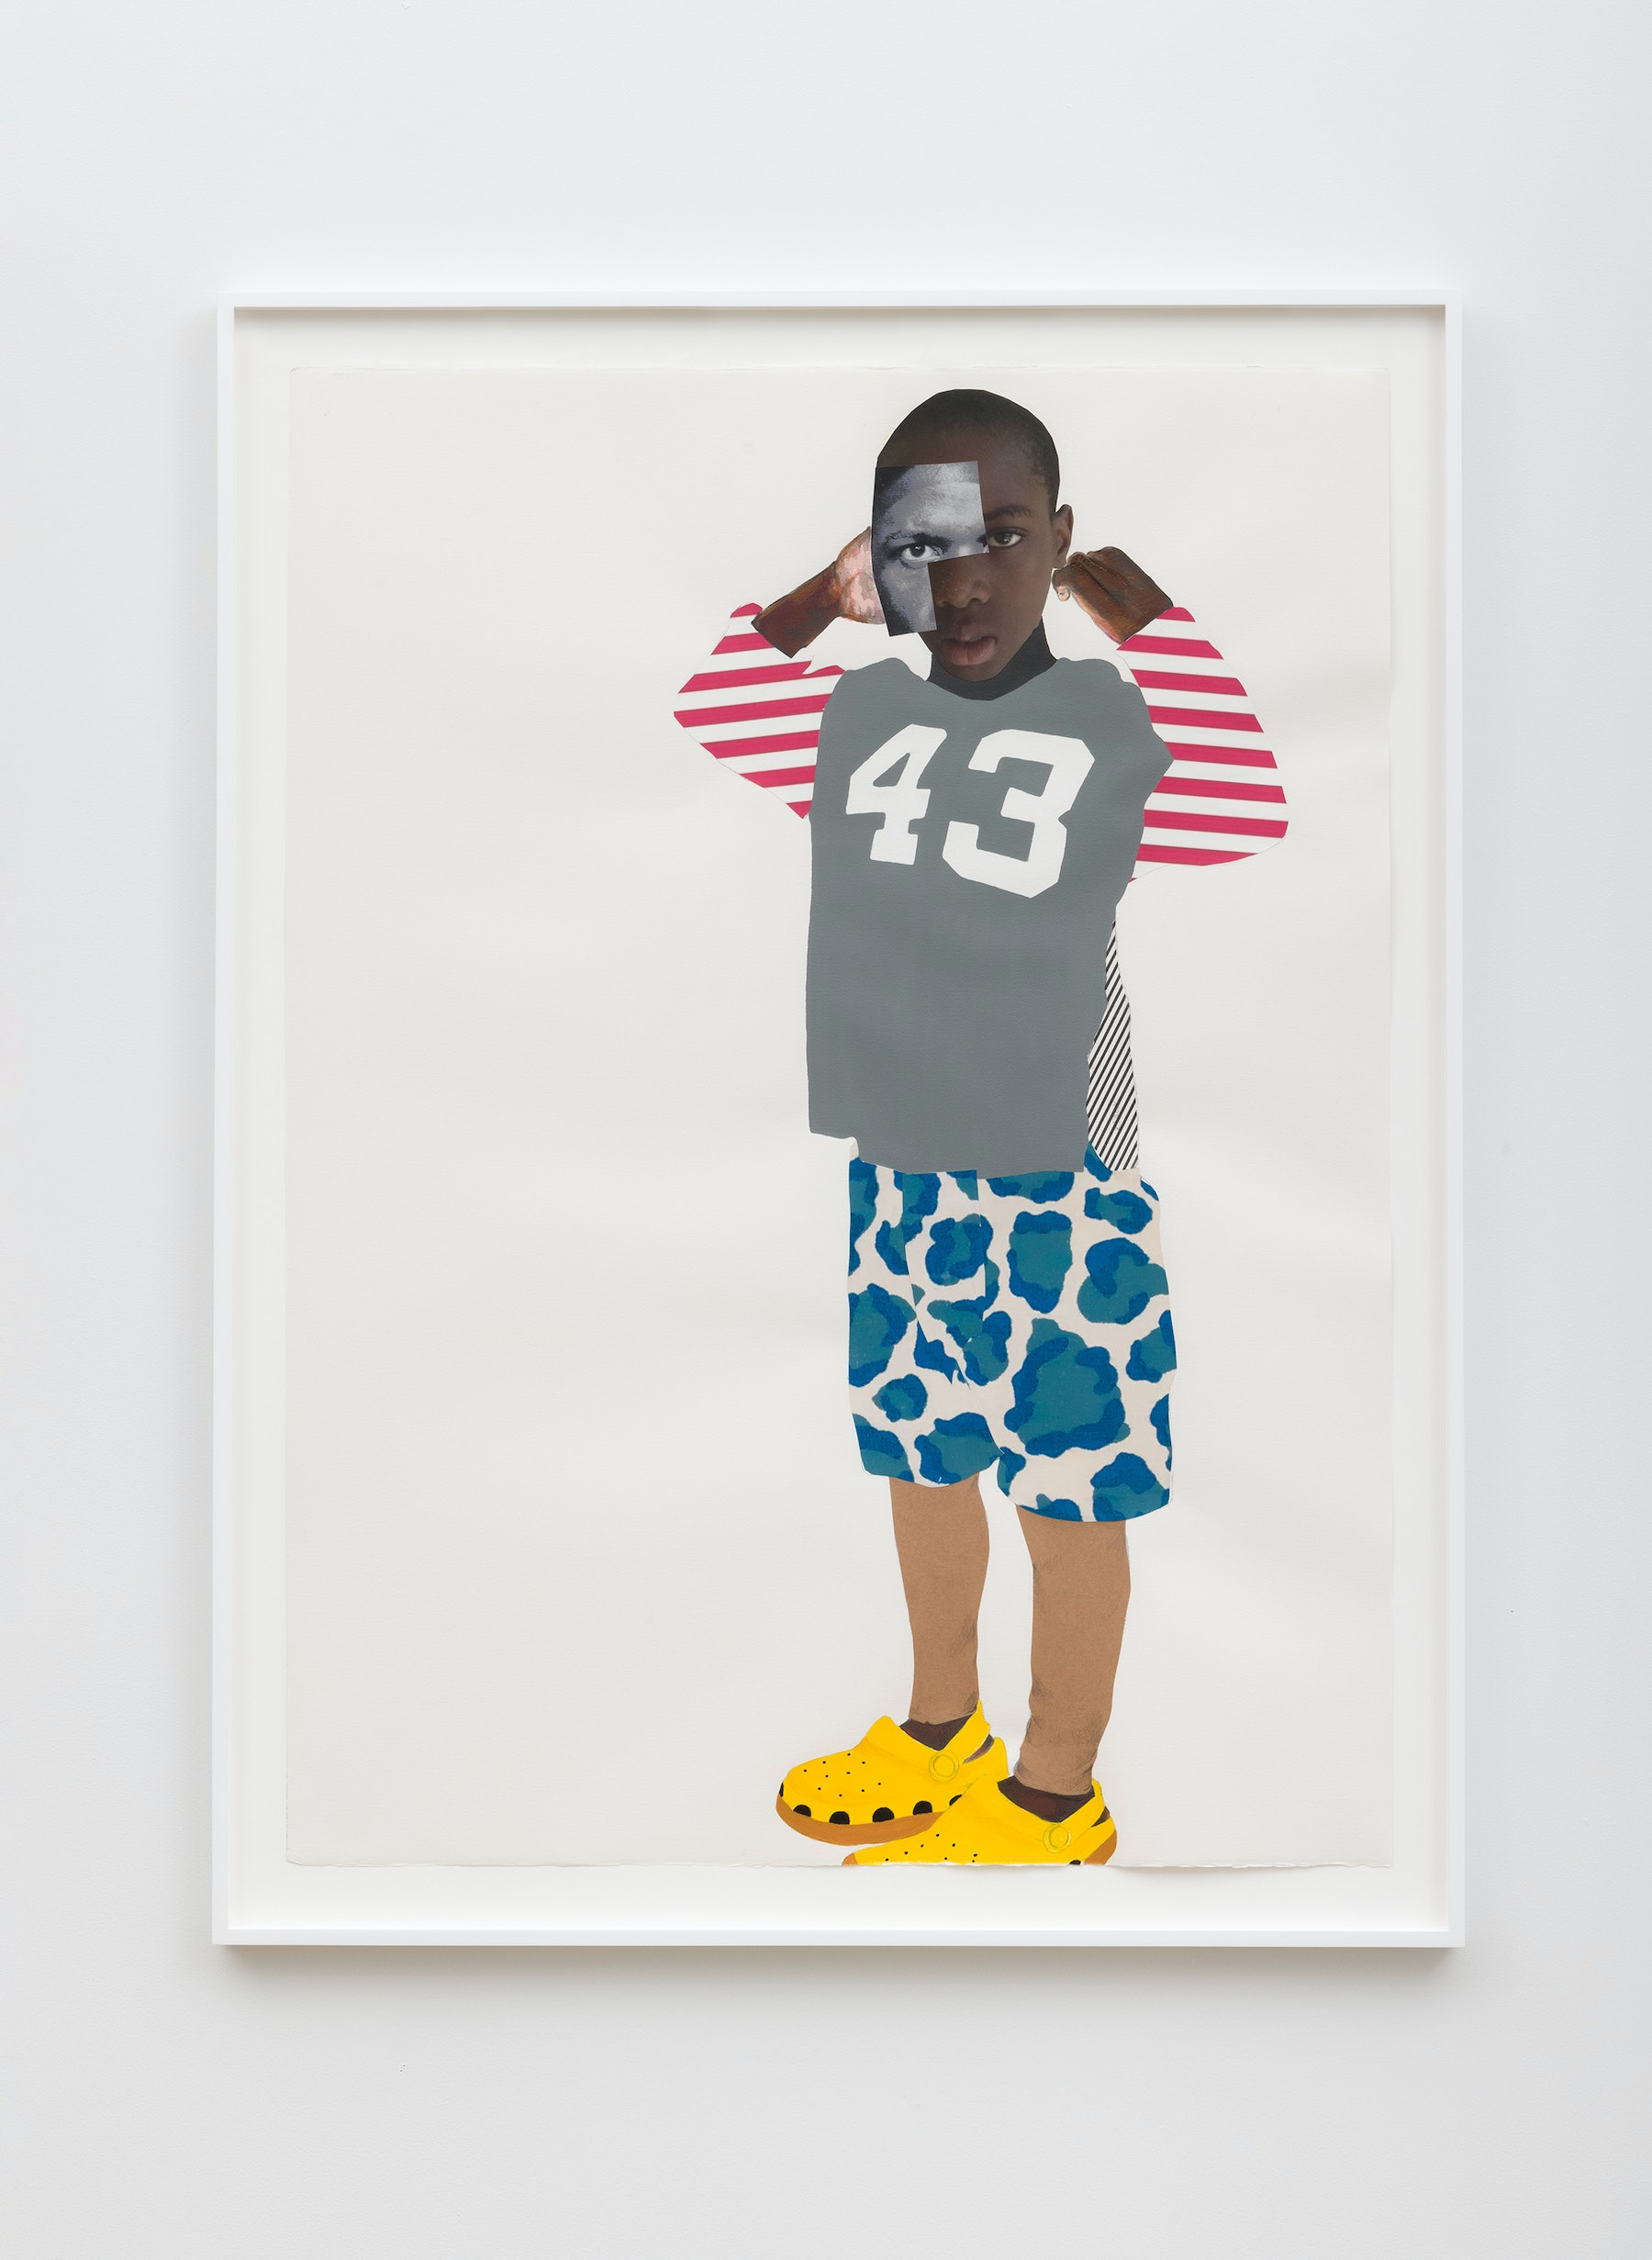 """Deborah Roberts """"They don't know,"""" 2021 Mixed media collage on paper 52"""" x 38"""" [HxW] (132.08 x 96.52 cm); 56 ¹⁄₂"""" x 42 ³⁄₄"""" x 1 ³⁄₄"""" [HxWxD] (143.51 x 108.58 x 4.44 cm) framed Inventory #ROB459 Courtesy of the artist and Vielmetter Los Angeles Photo credit: Jeff McLane"""